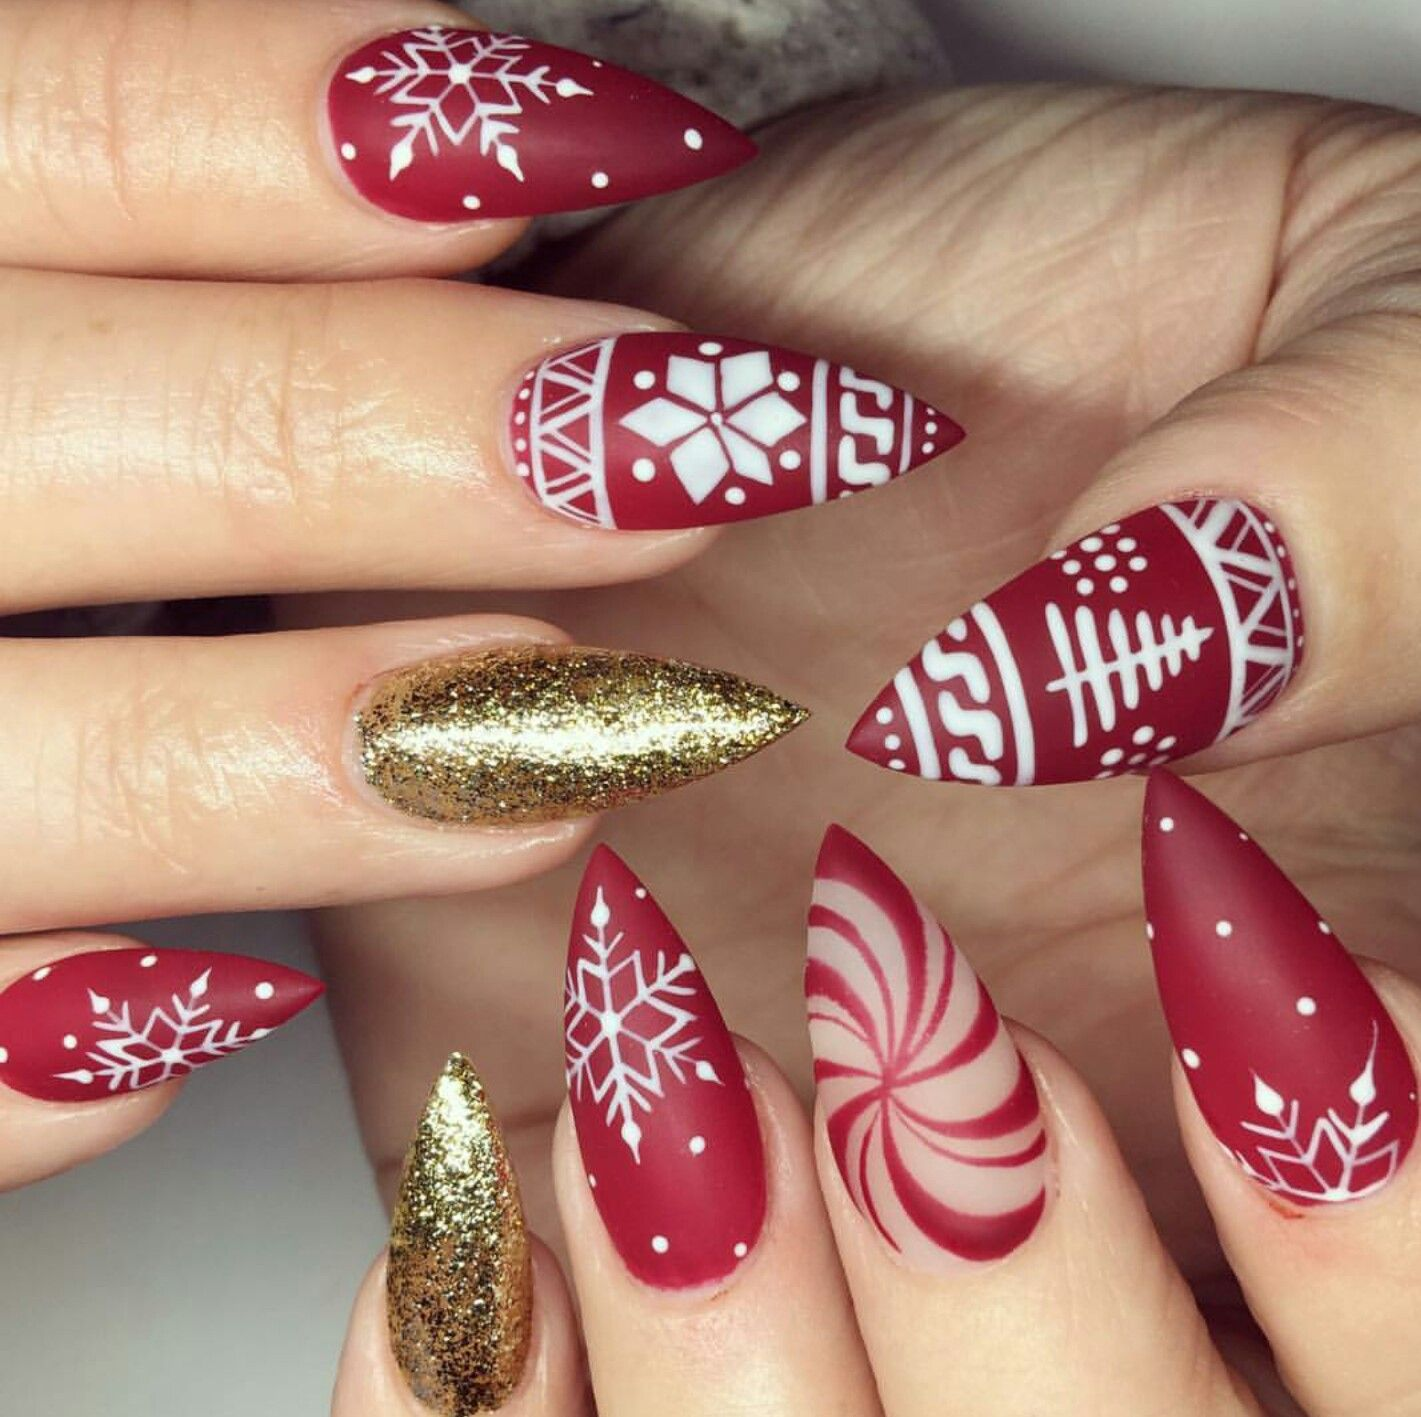 Pin by Sheila Fann on Nails | Pinterest | Manicure, Xmas nails and ...